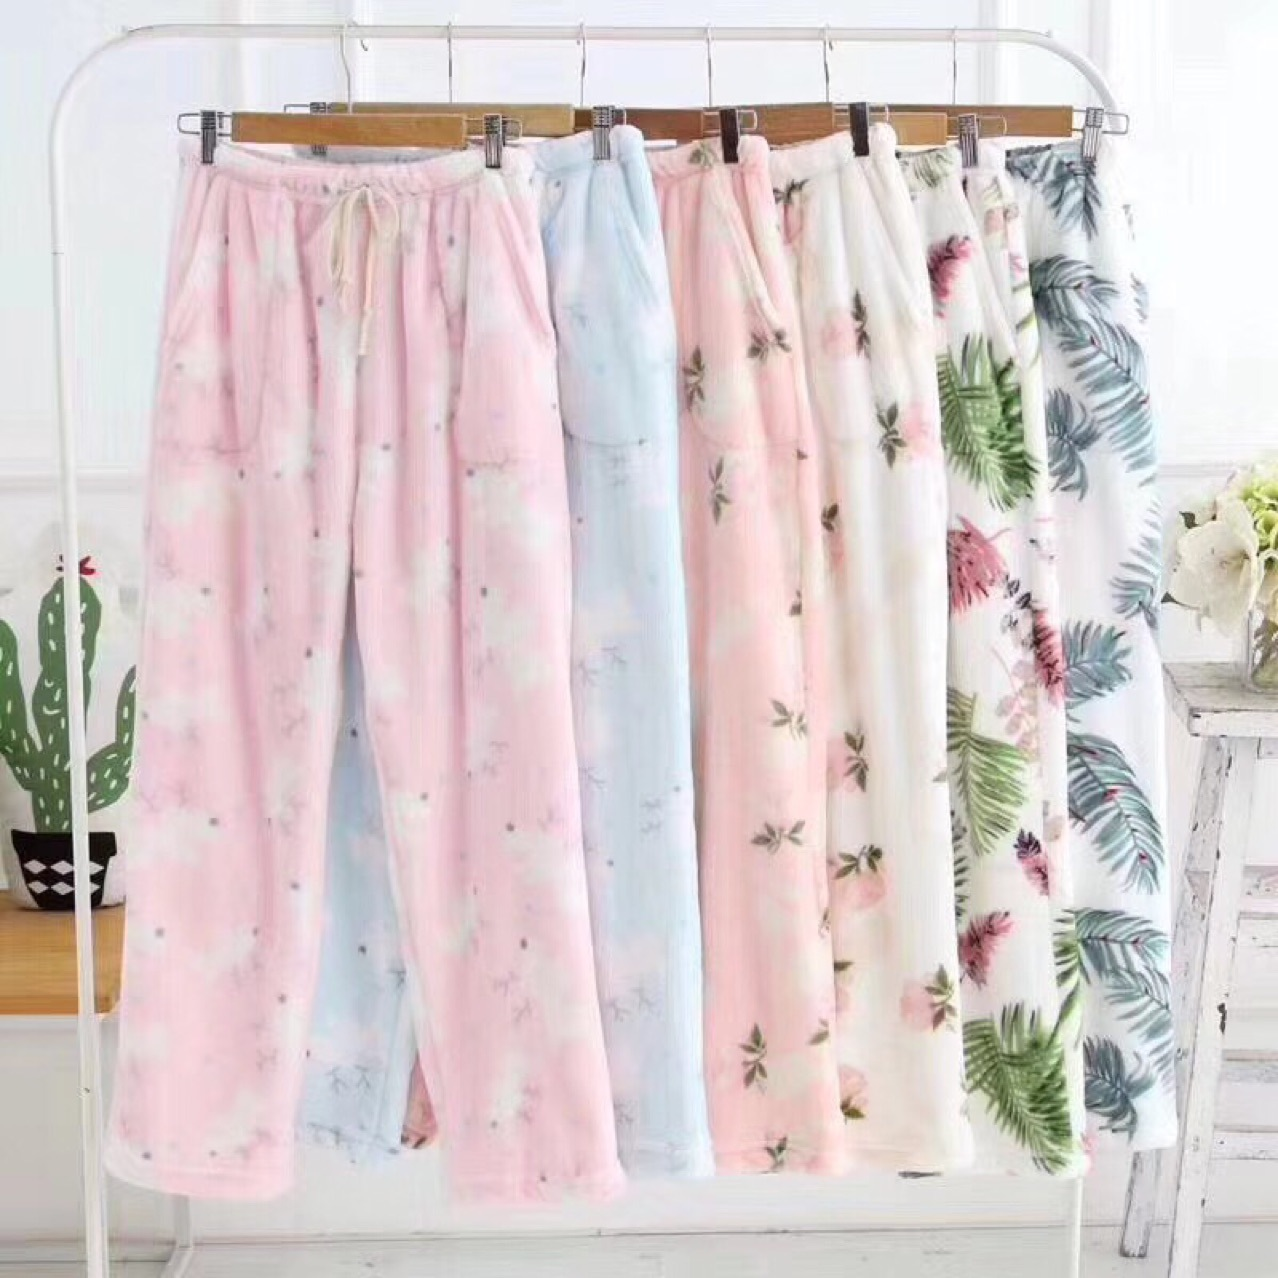 2018 Winter New Thicken Flannel Pants for Women Flannel Pajama Pants Women Sleep Bottoms Warm Floral Lounge Pants